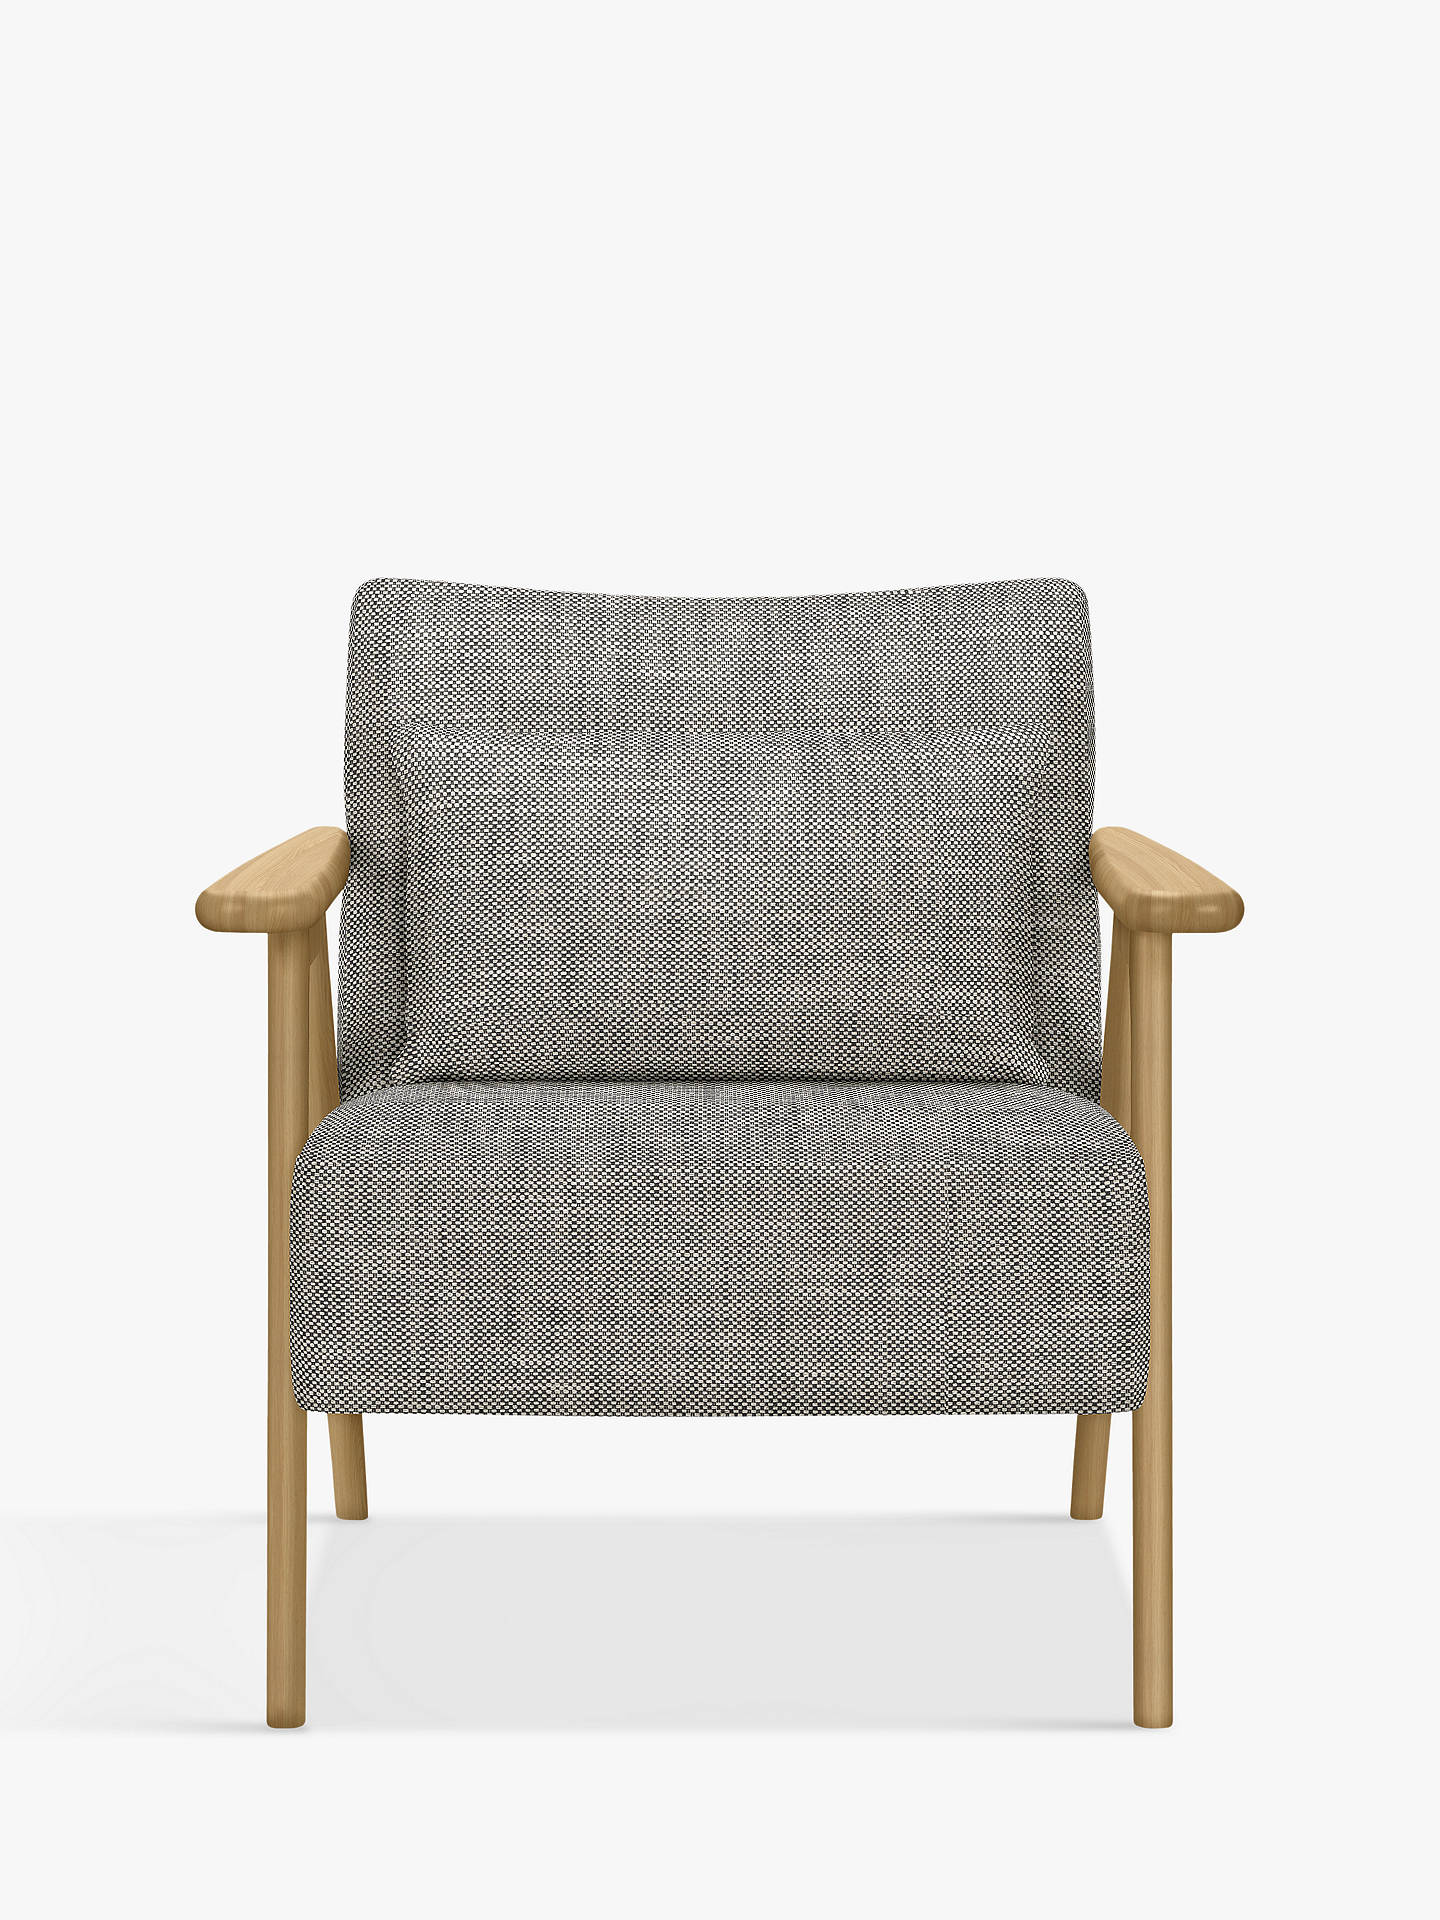 Super John Lewis Partners Hendricks Accent Armchair Light Wood Frame Elsie Storm Bralicious Painted Fabric Chair Ideas Braliciousco